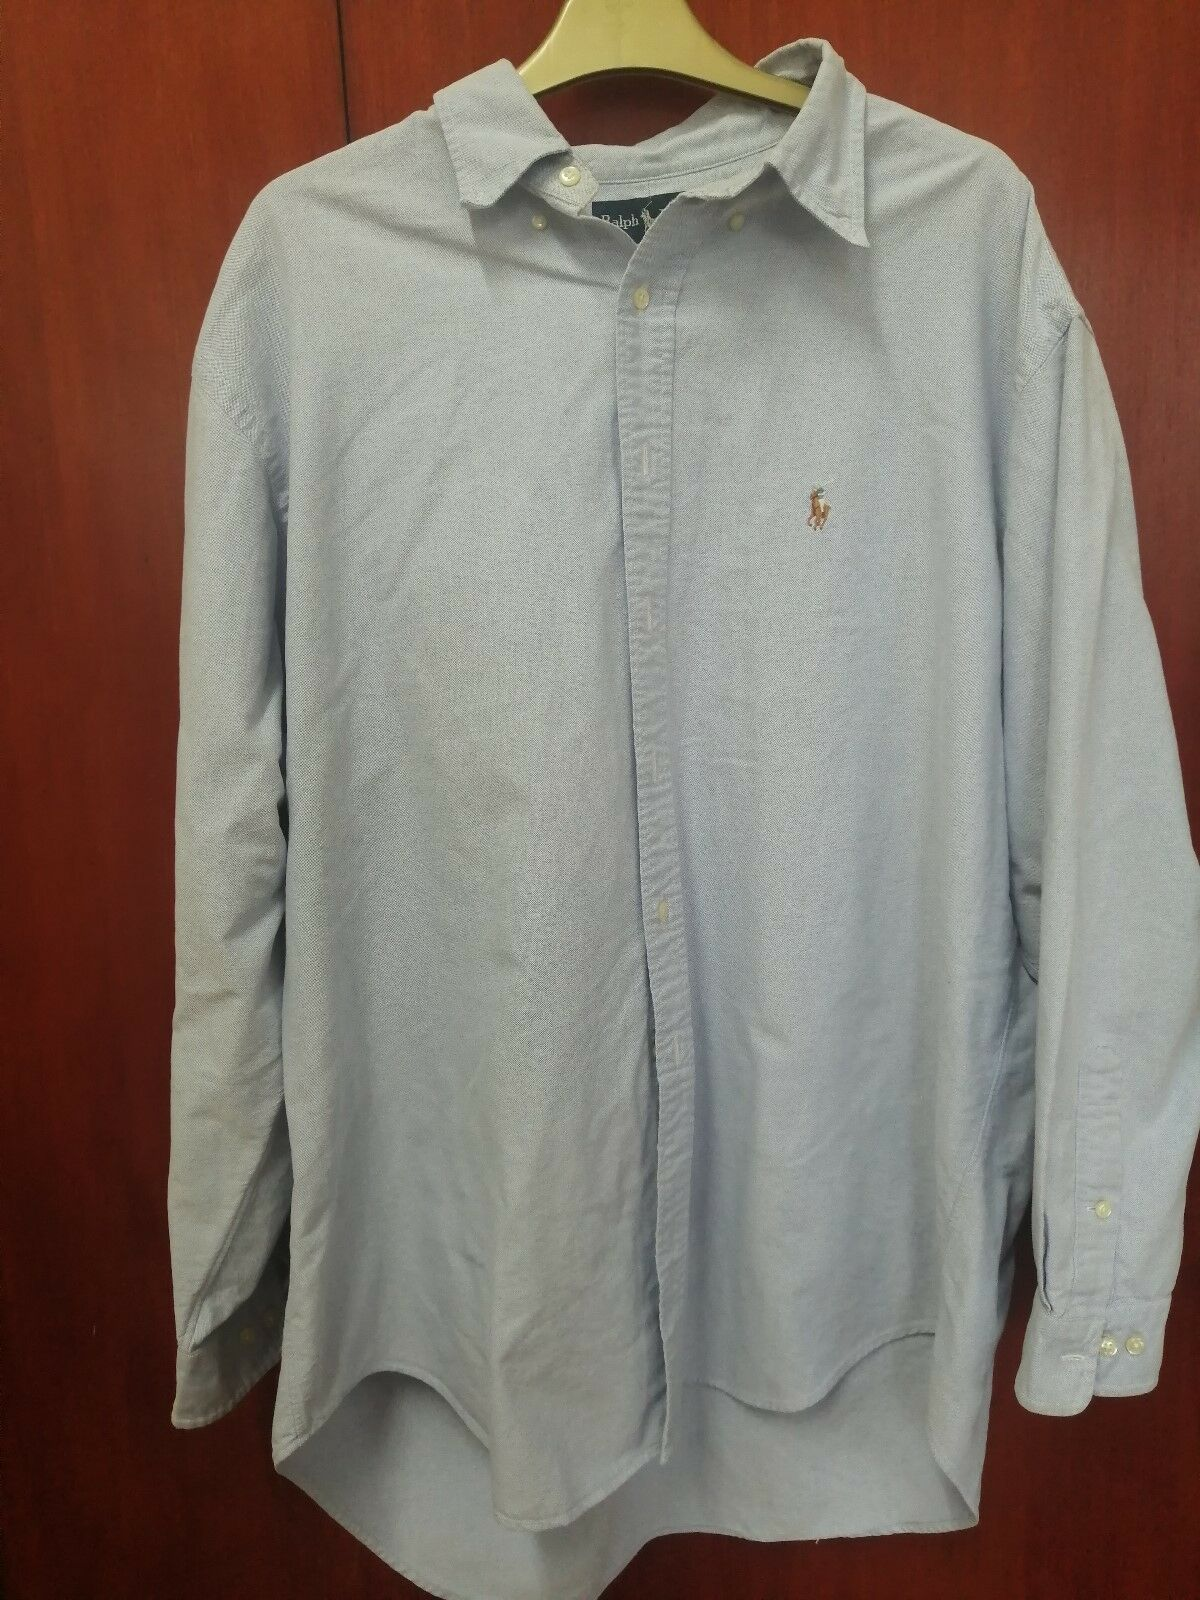 67ca02472a4fc5 Ralph Lauren Shirt - Men s Long Sleeved Light bluee nqfovb26059 ...